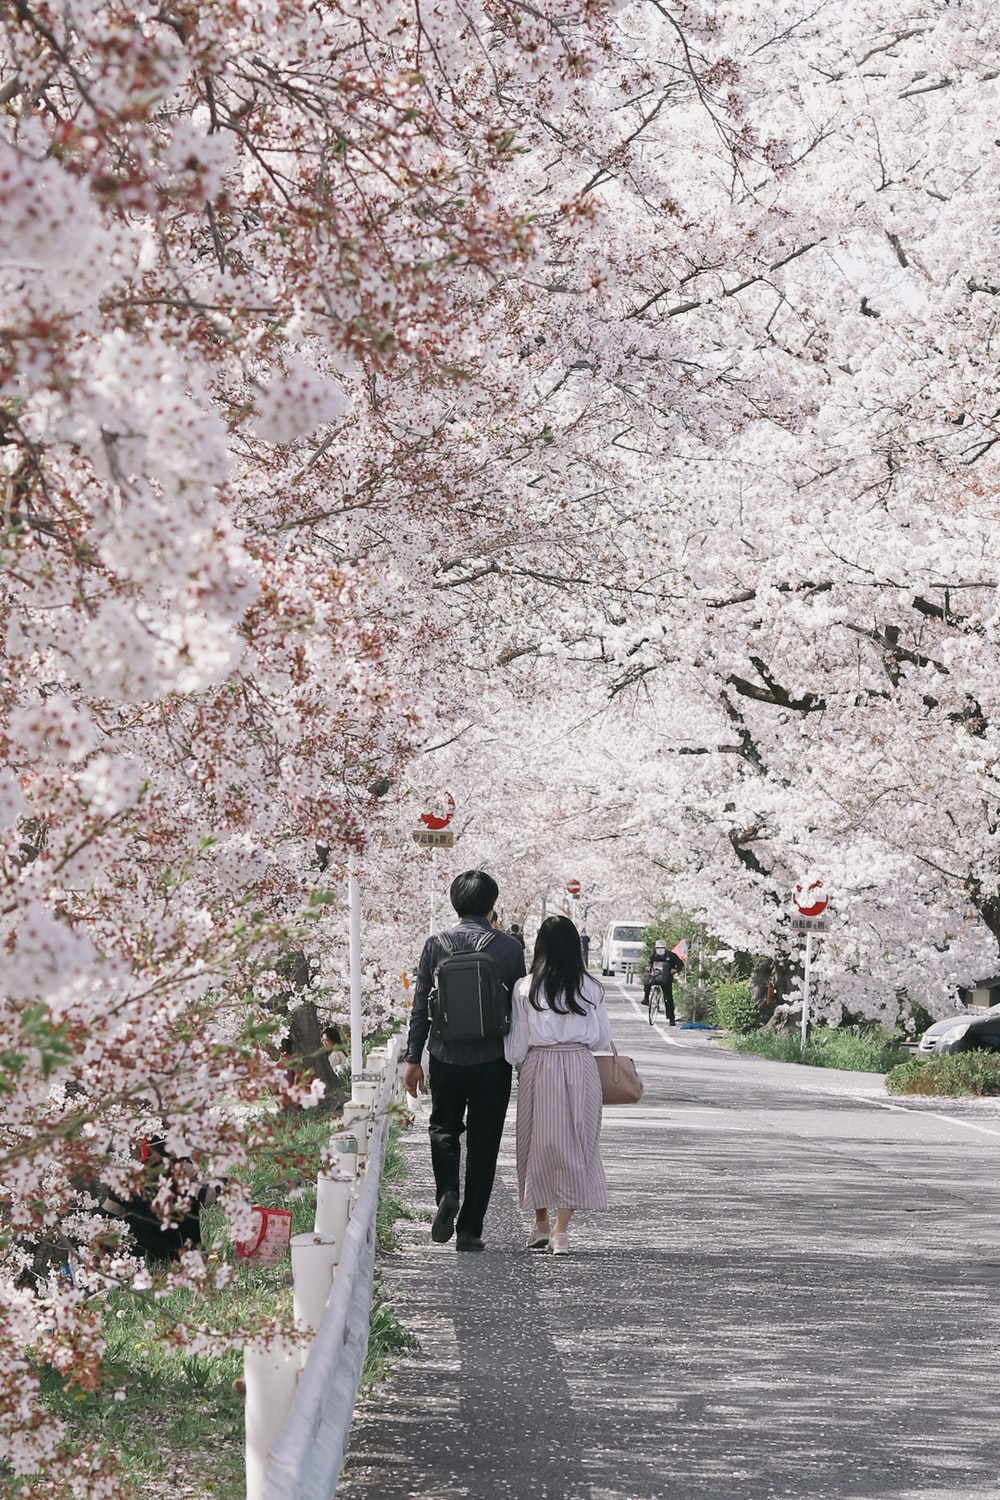 man and woman walking on road between cherry blossom trees during daytime